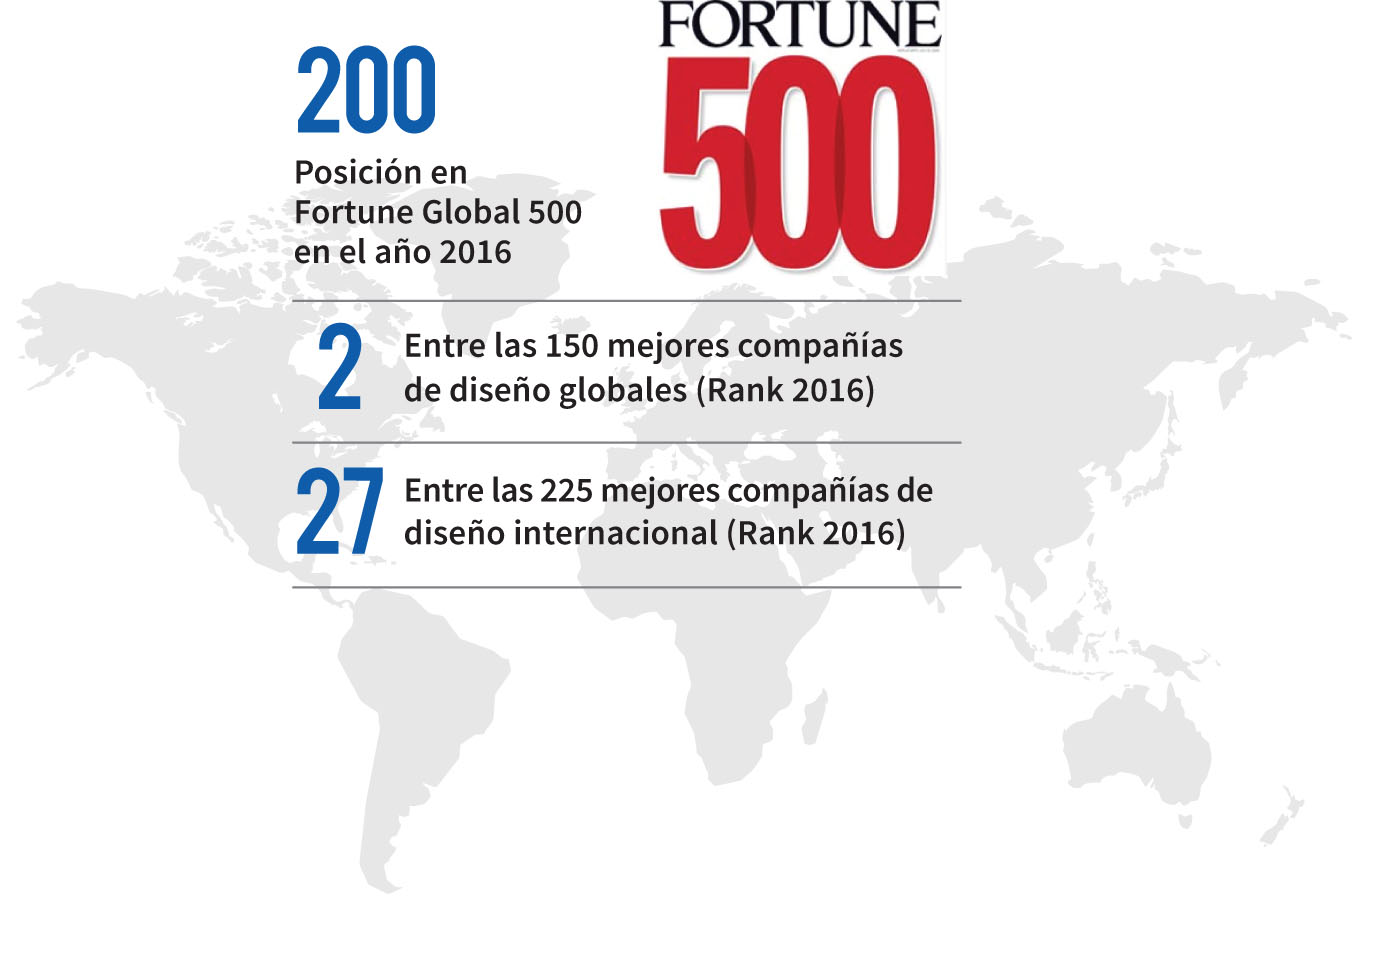 Powerchina Fortune 500